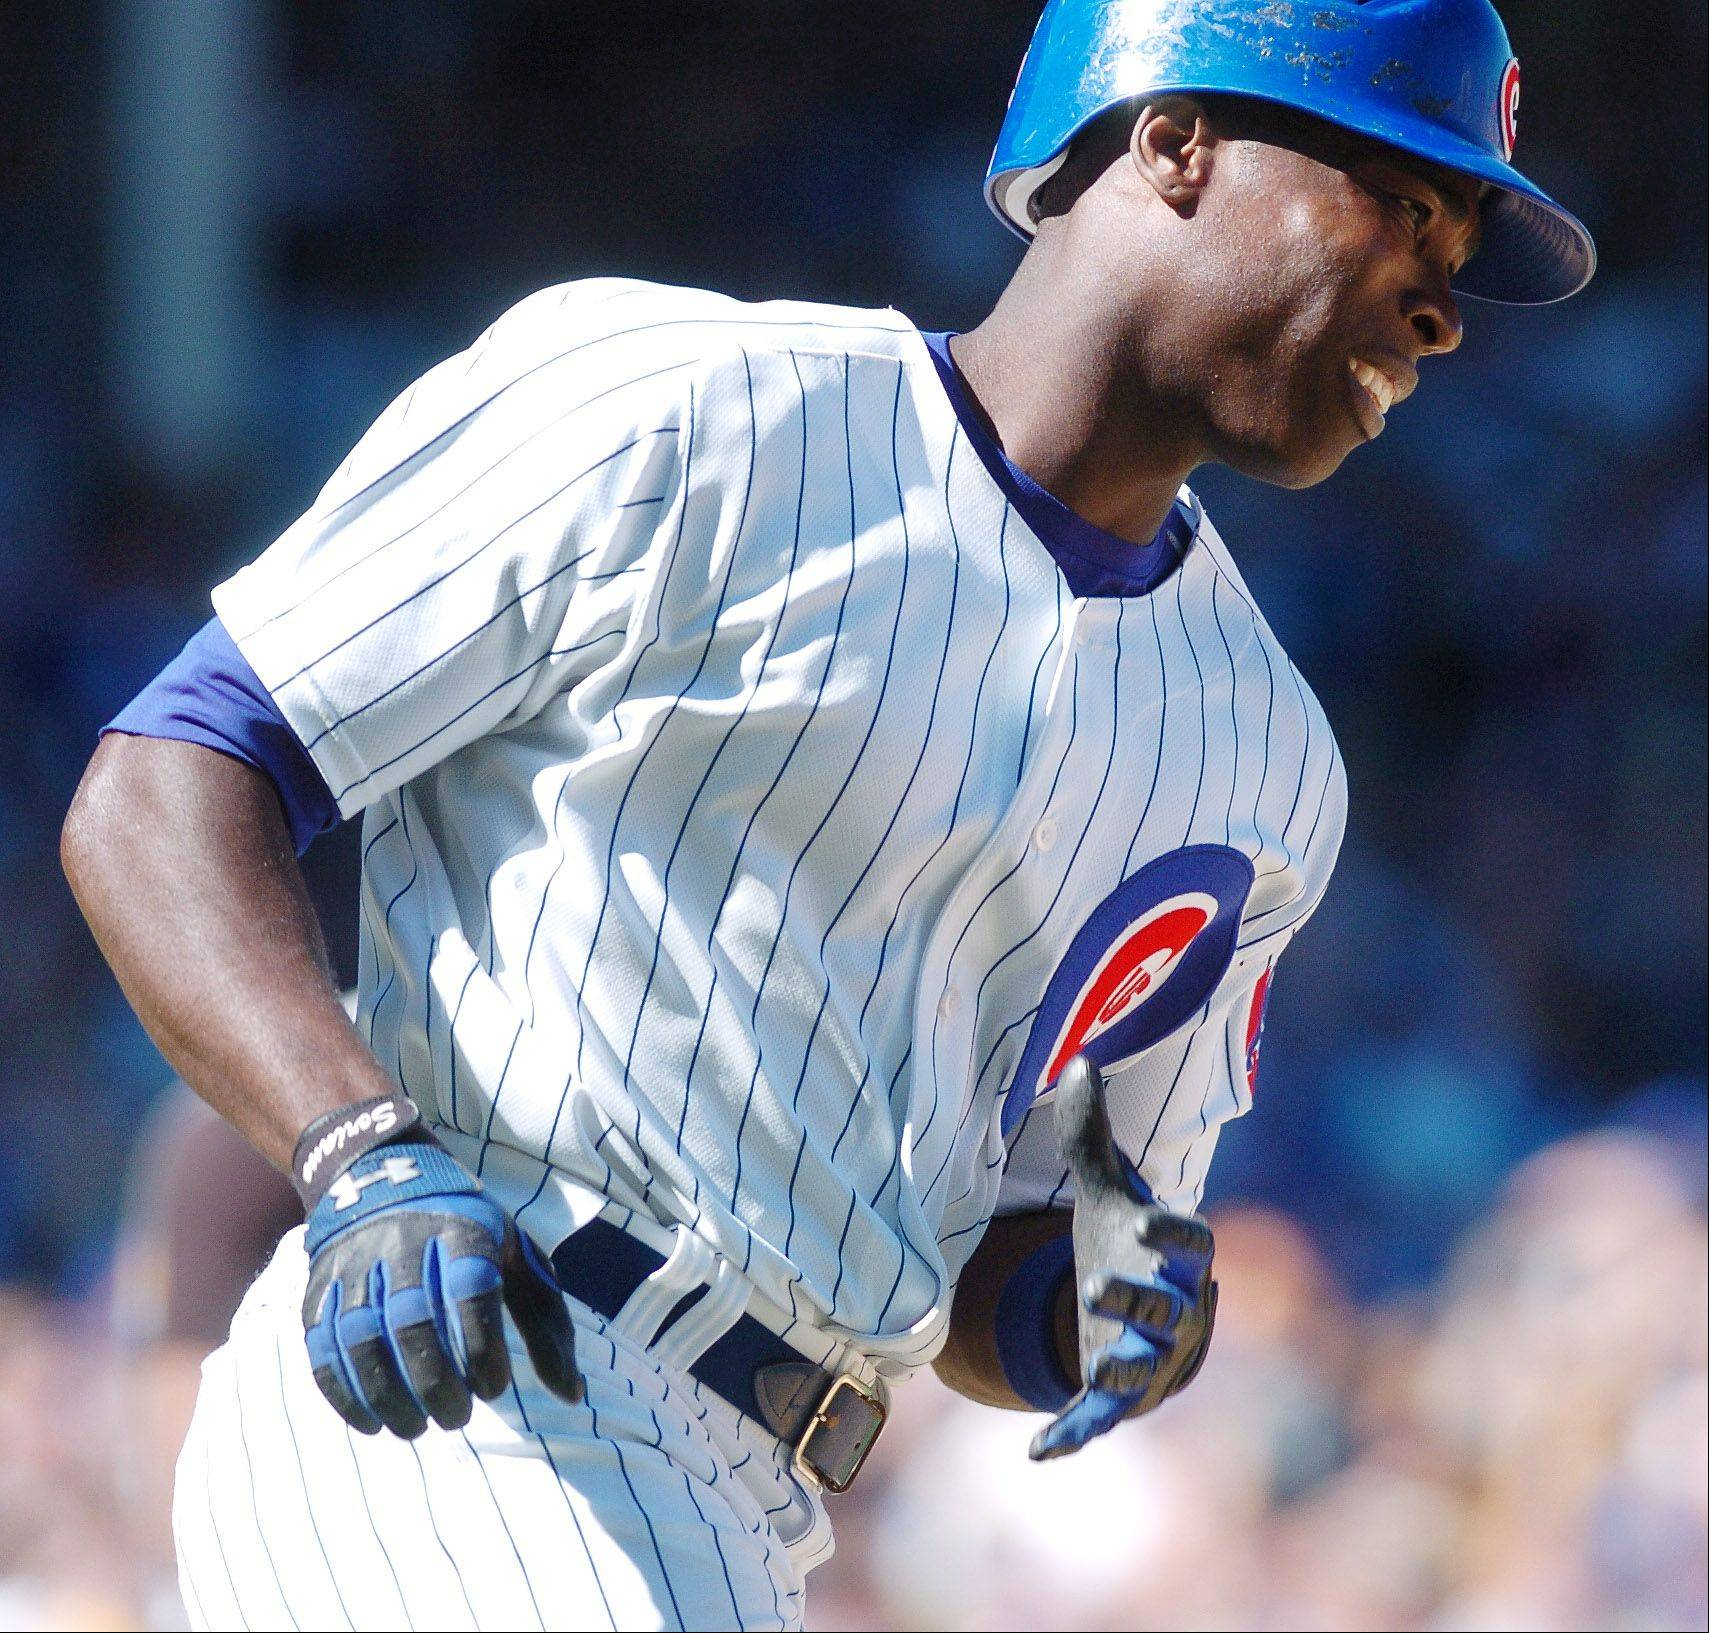 With Alfonso Soriano checking in at 40th on fangraphs.com wins above replacement rankings, you can see why Theo Epstein and Jed Hoyer don't just want to give him away.